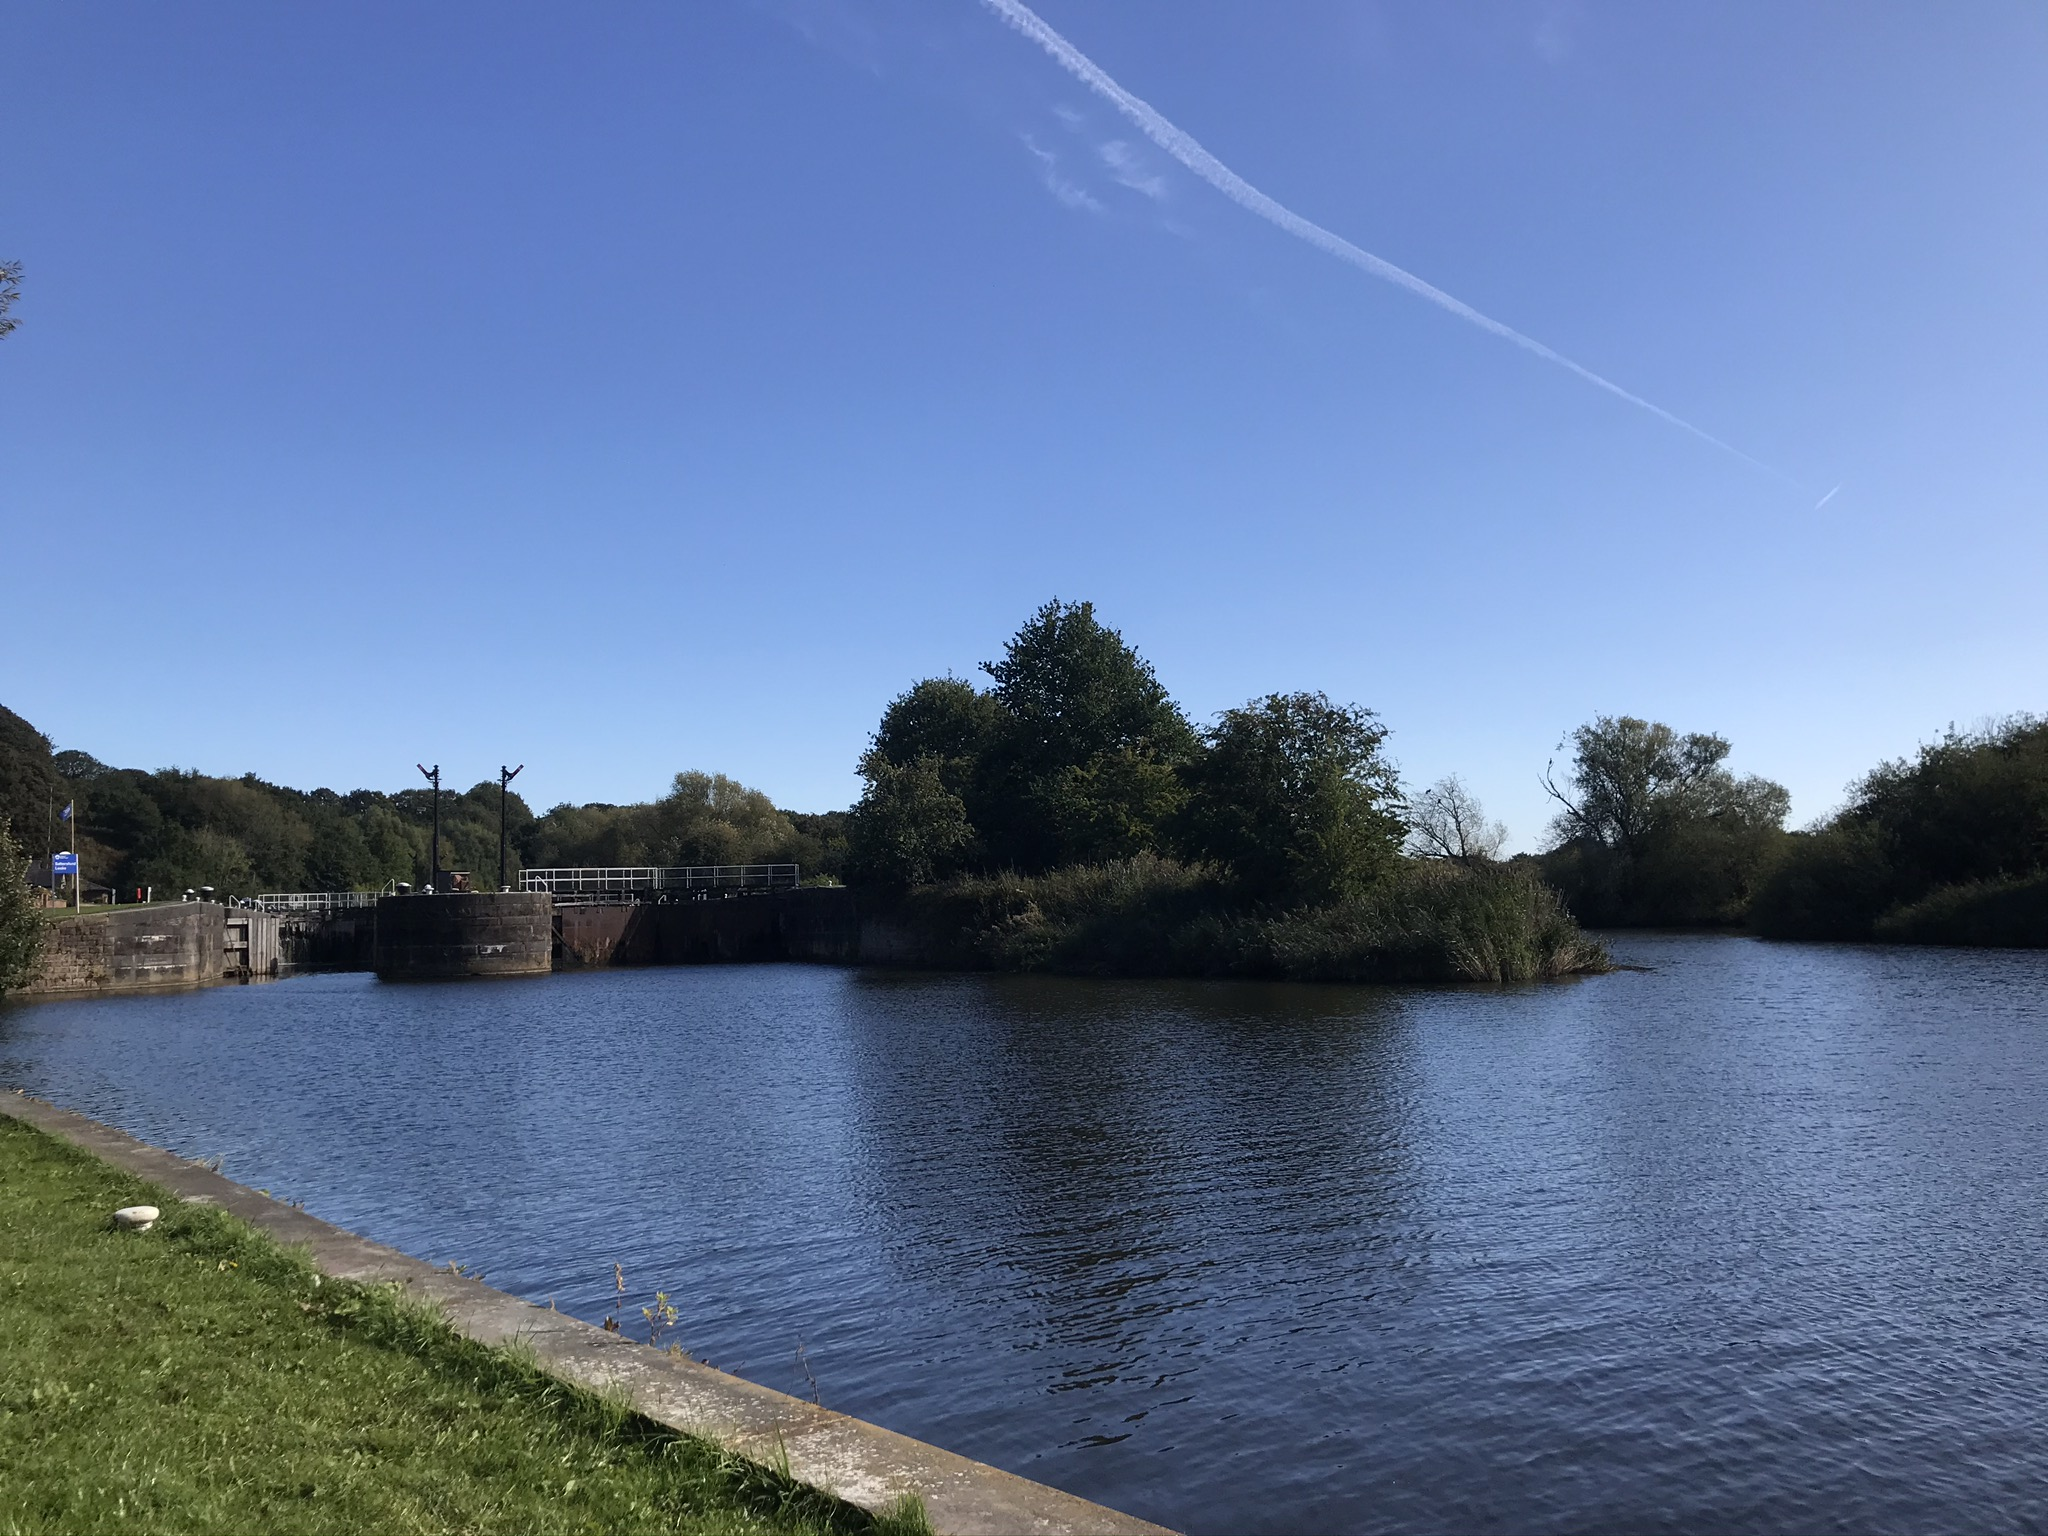 A river lock and the river reflecting a blue sky with trees on an island